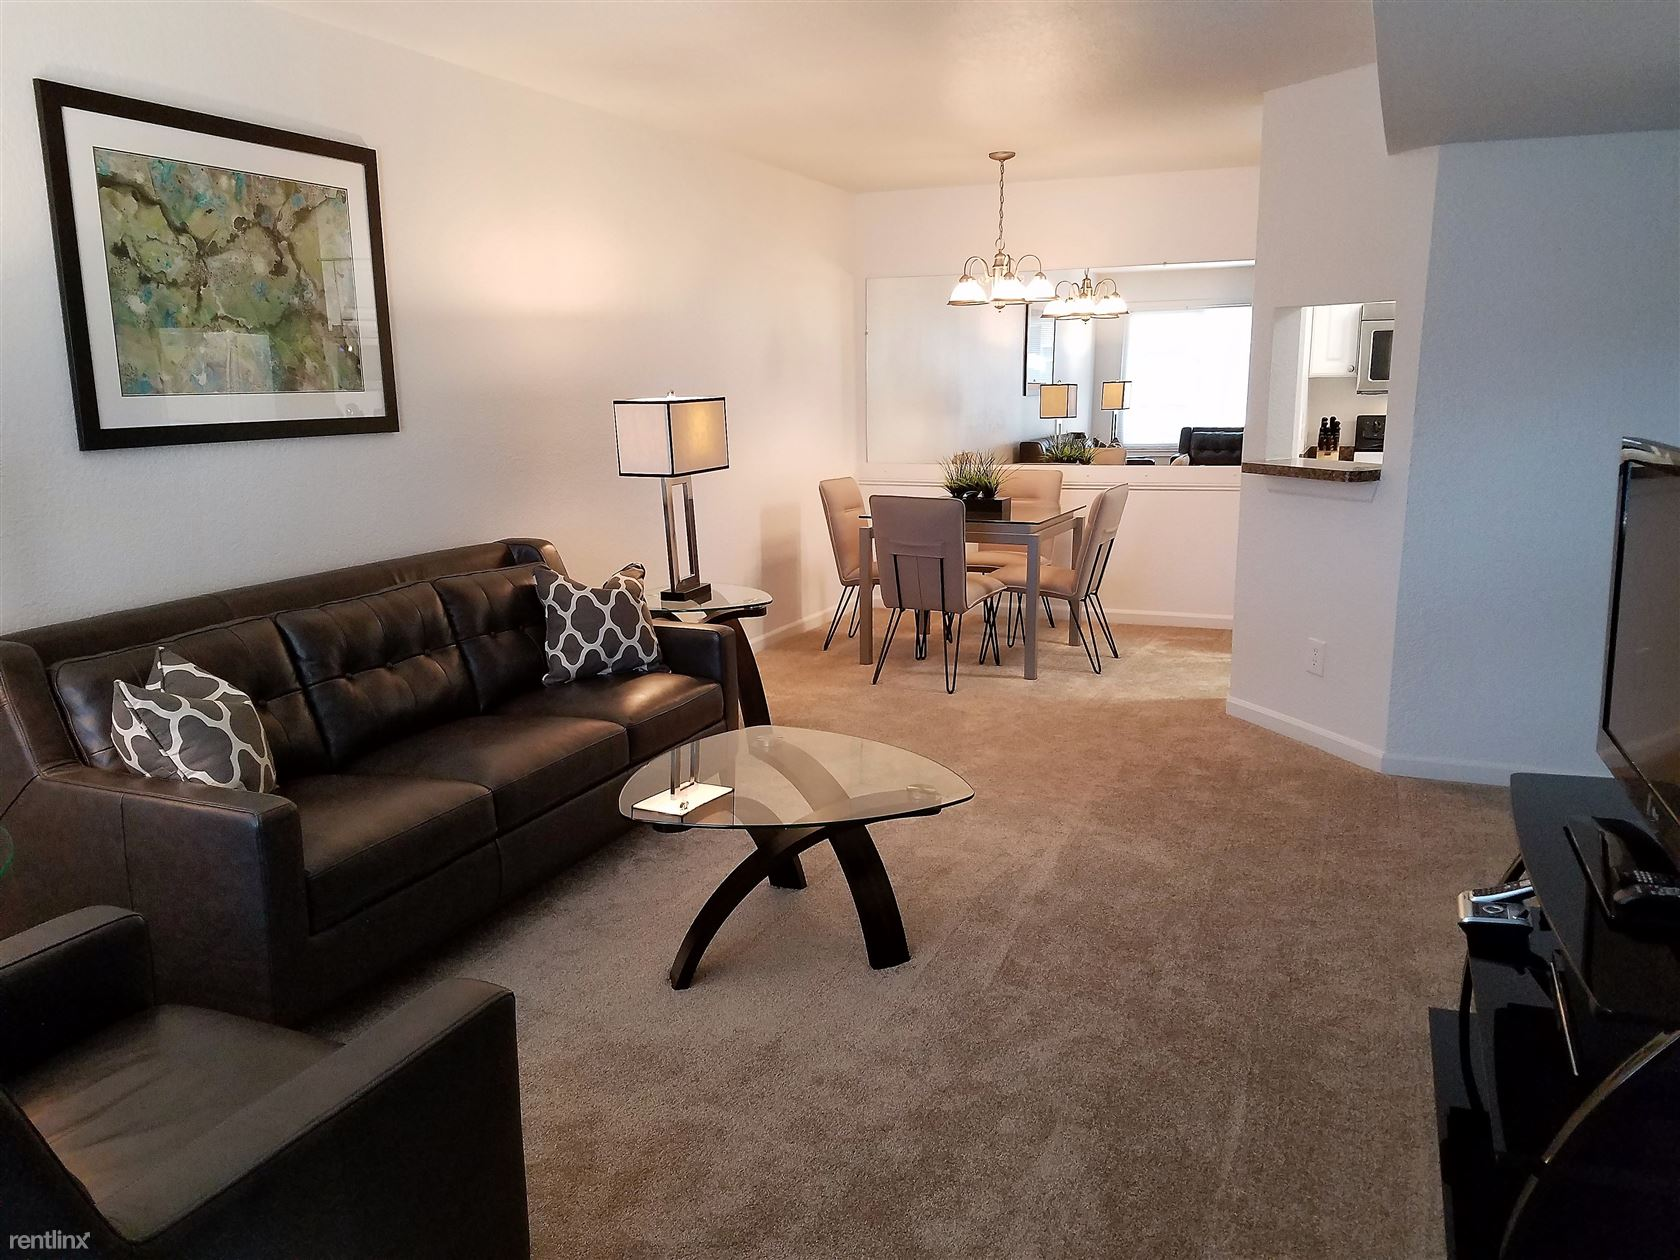 Apartment for Rent in Rochester Hills